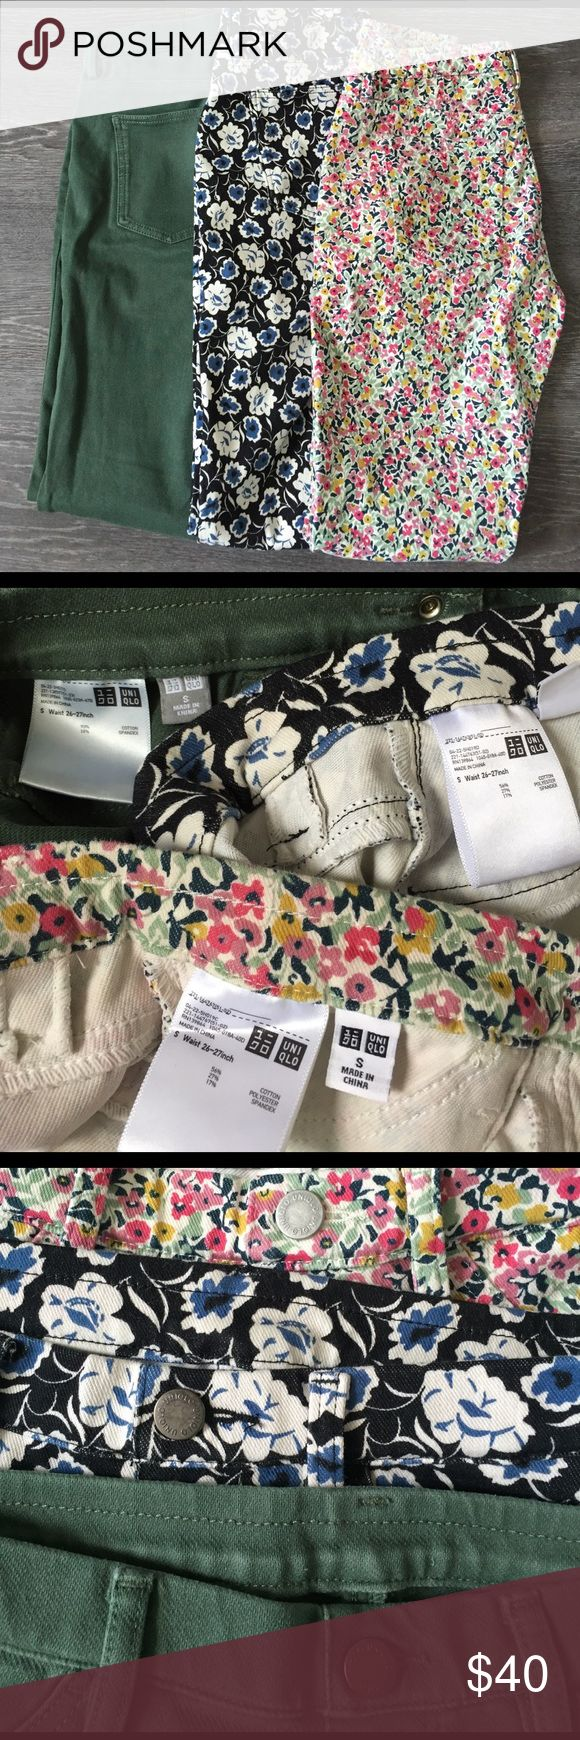 Uniqlo legging pants (3) 3 pairs of Uniqlo legging pants, all size Small. Each worn a few times, practically brand new, great condition. They're soft & comfortable, and fit as expected. Forest green, colorful spring floral pattern, black/white/blue floral pattern. $40 for all 3 OBO. Uniqlo Pants Leggings